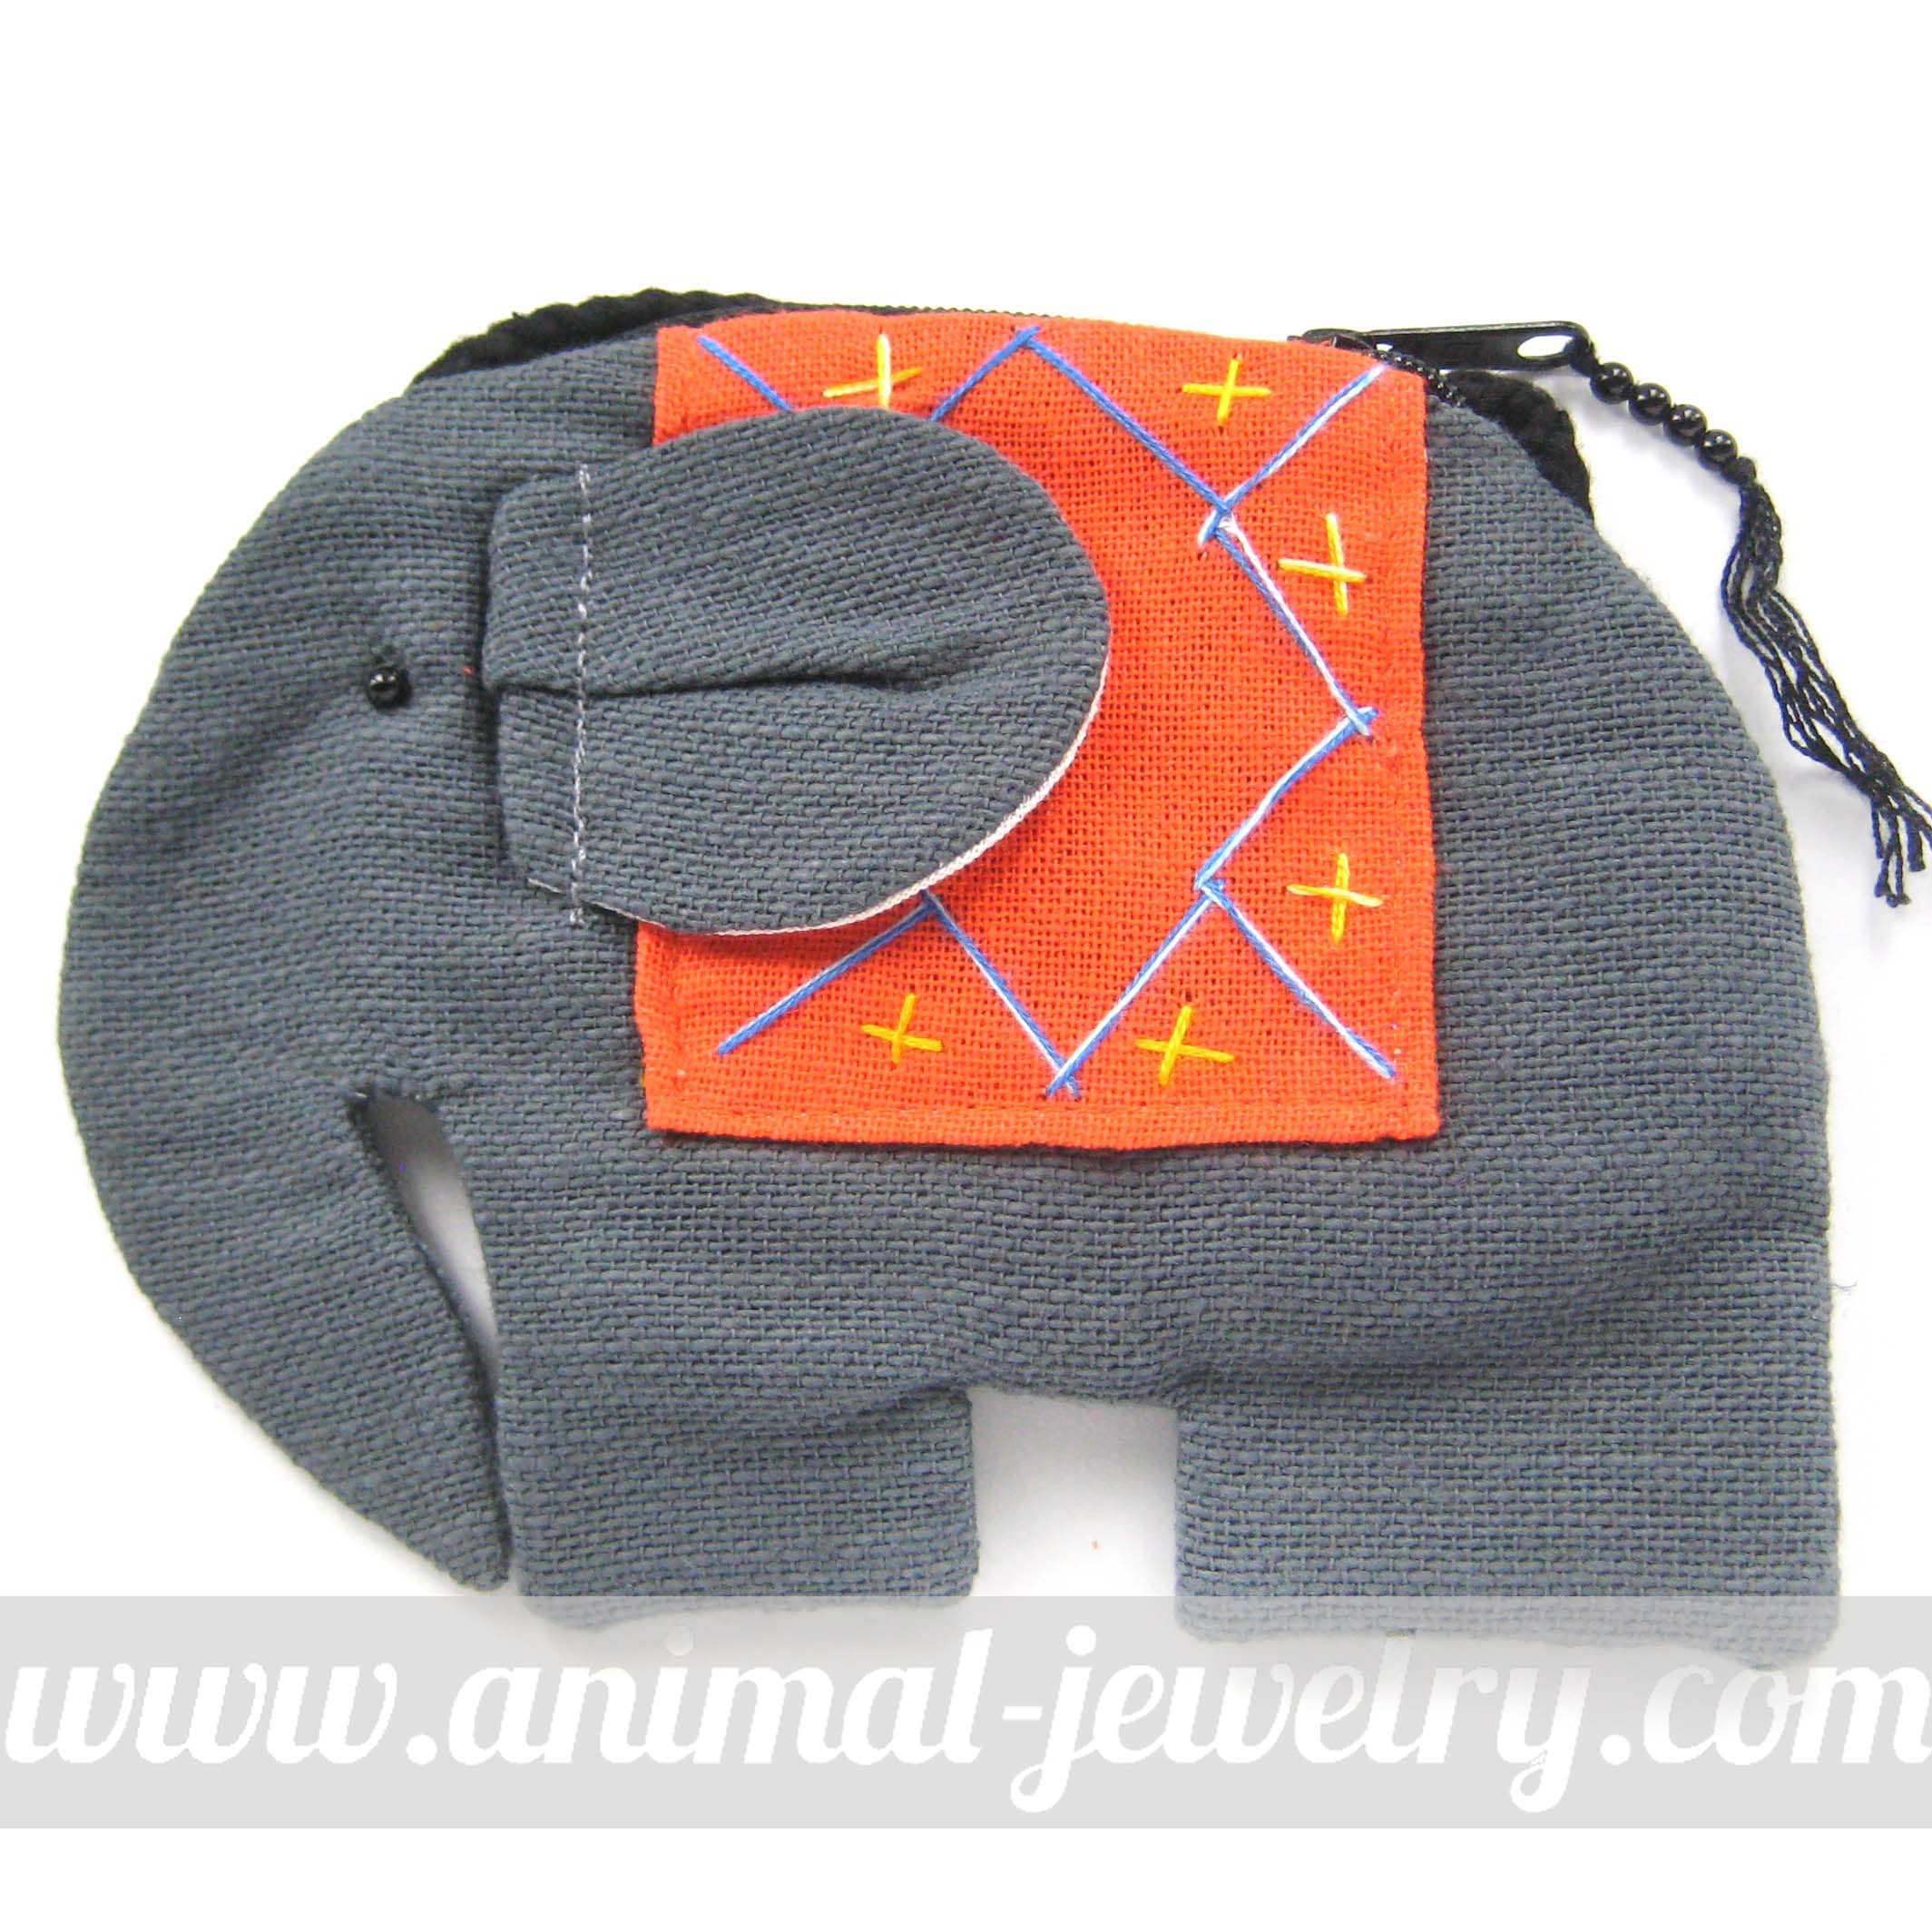 Small Elephant Shaped Animal Cross Body Bag in Grey